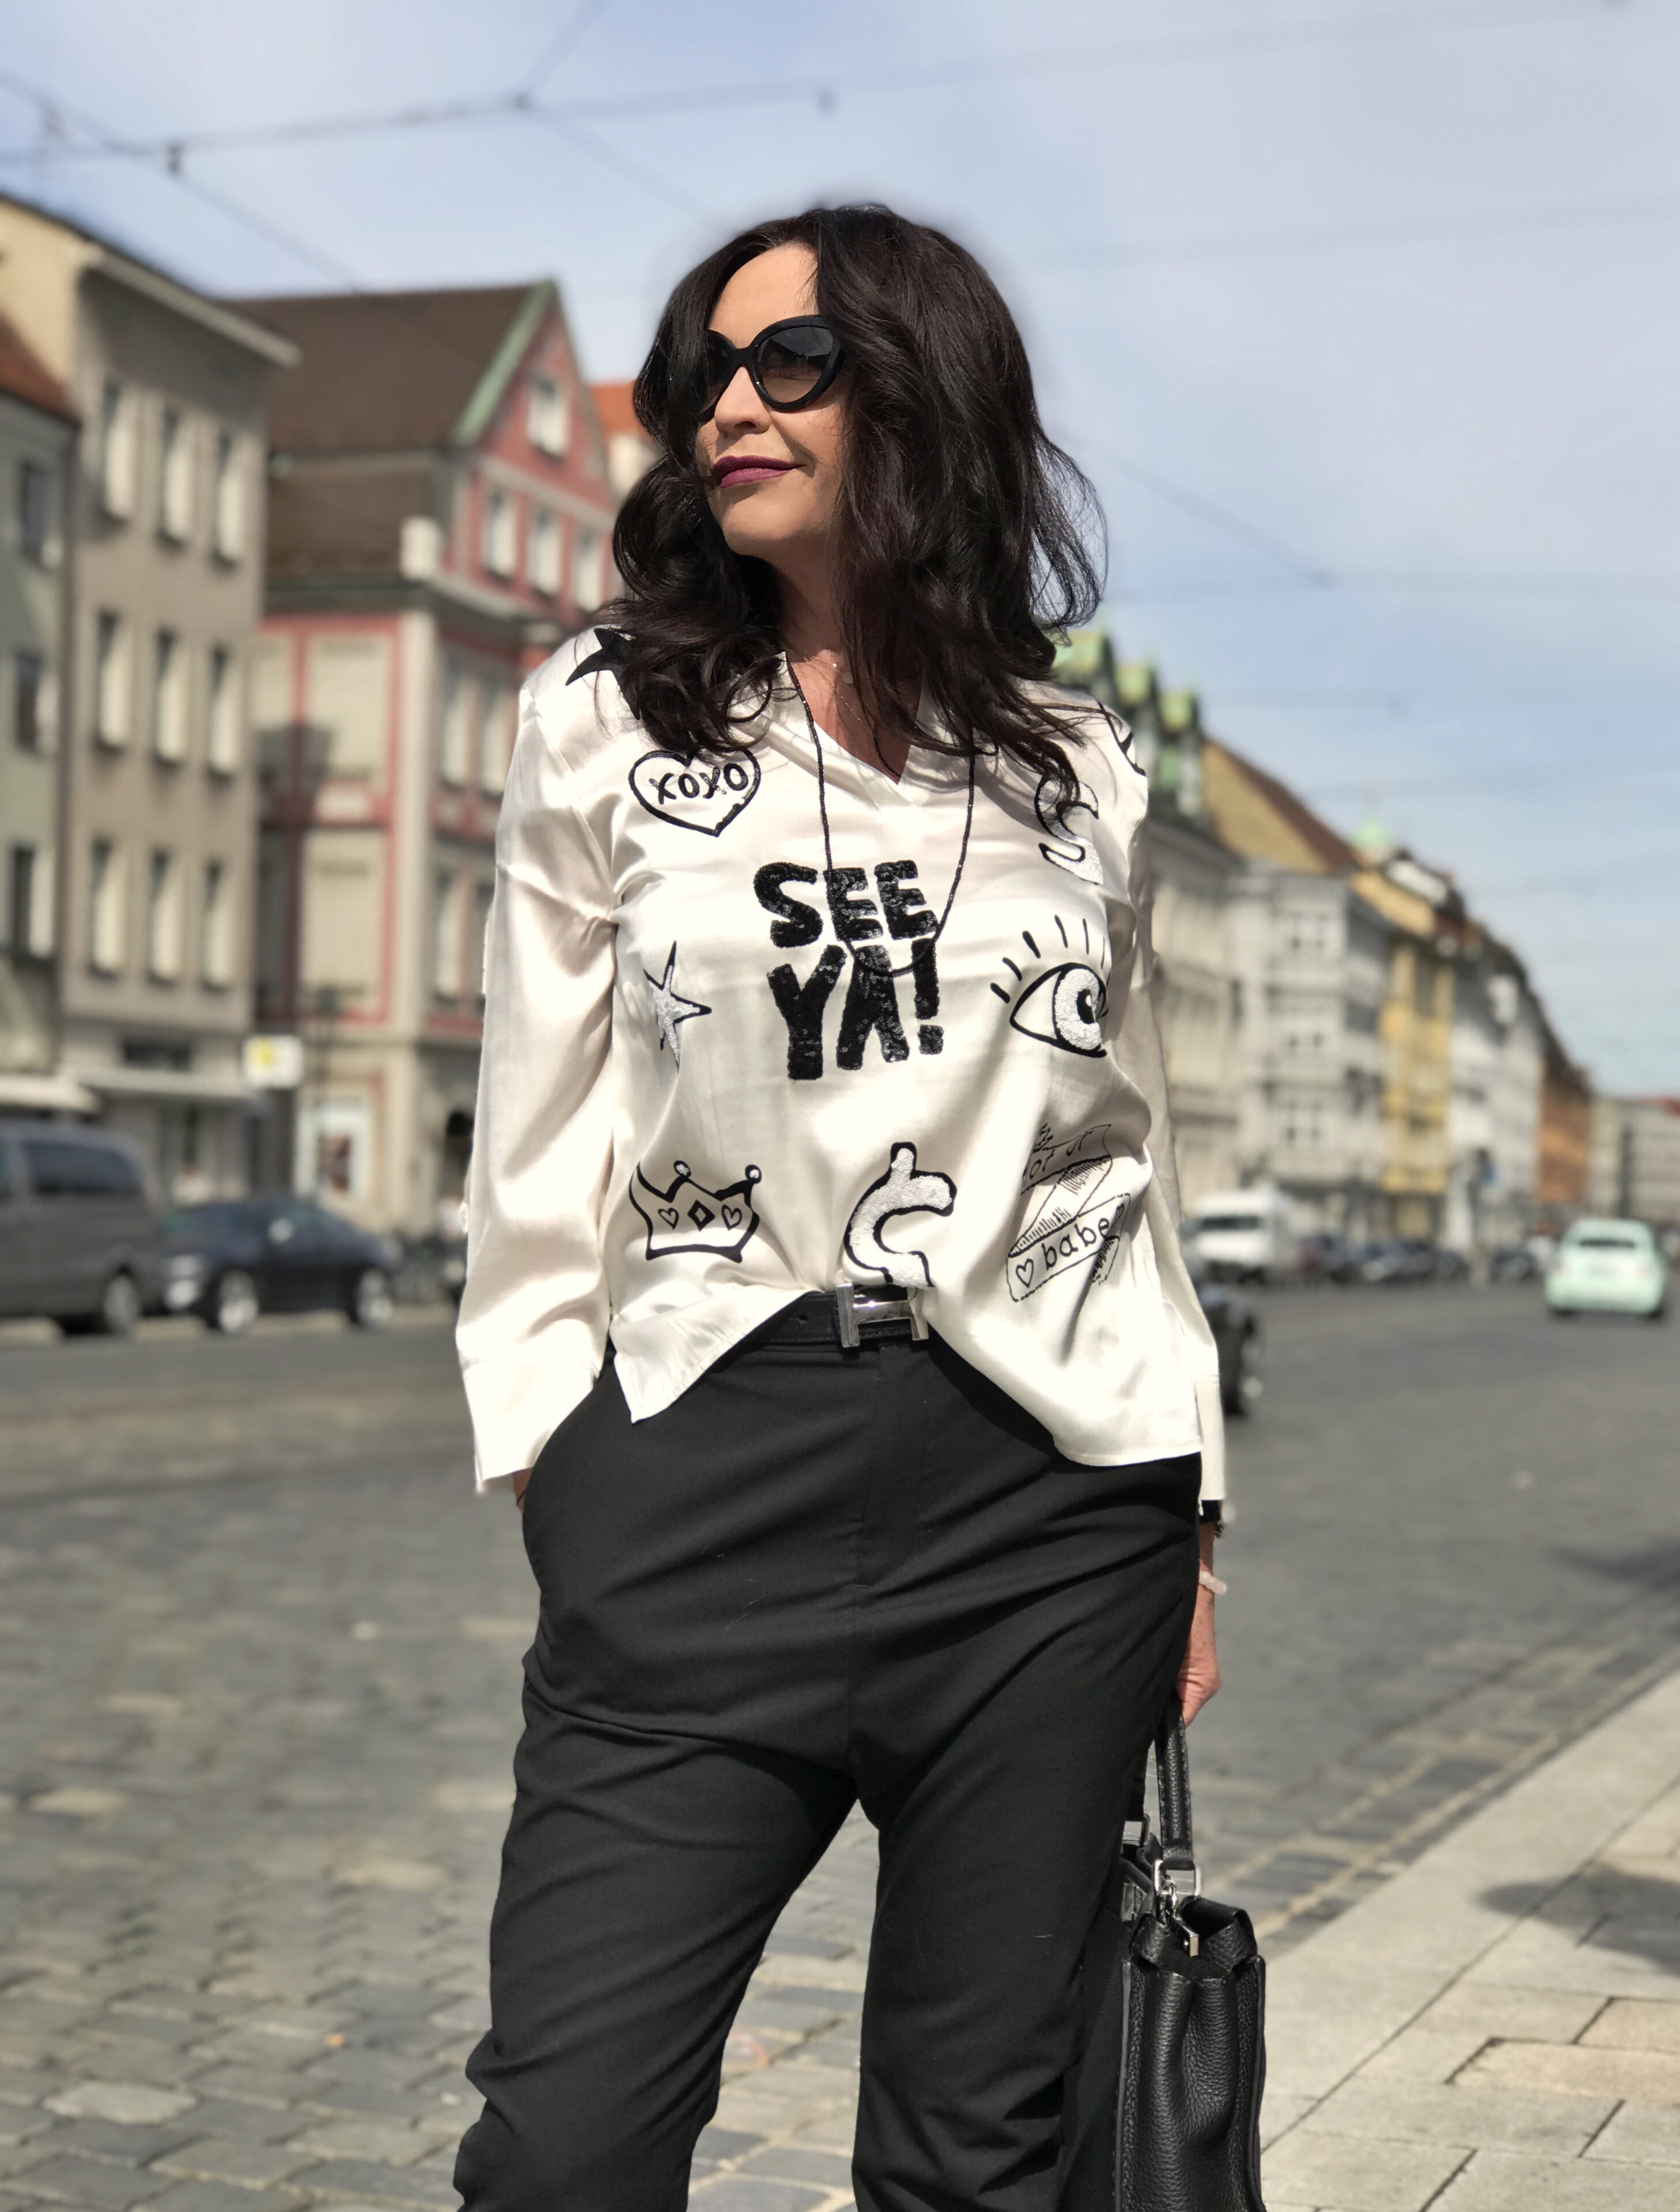 Grace fashion, black and white, Hope pants, Fendi bag, Buffalo shoes, Prada shades, designer wear, streetchic, ageless style, streetfashion, classy outfit, fashion for ladies, Fashionblog Augsburg, bestage